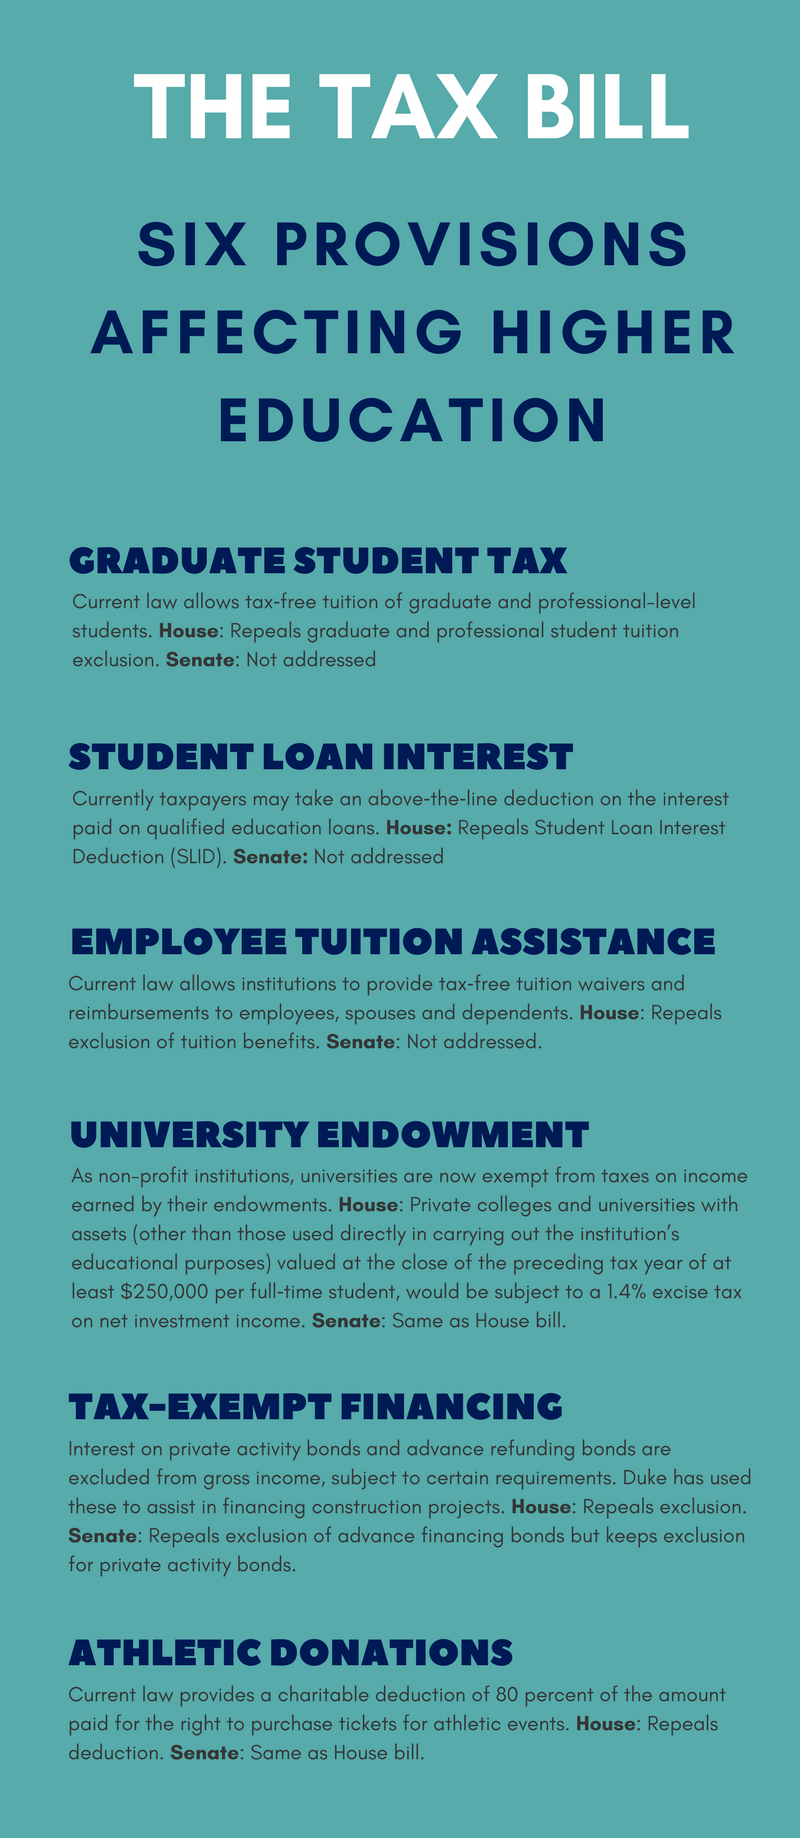 6 Key provisions of the tax bill affecting higher education